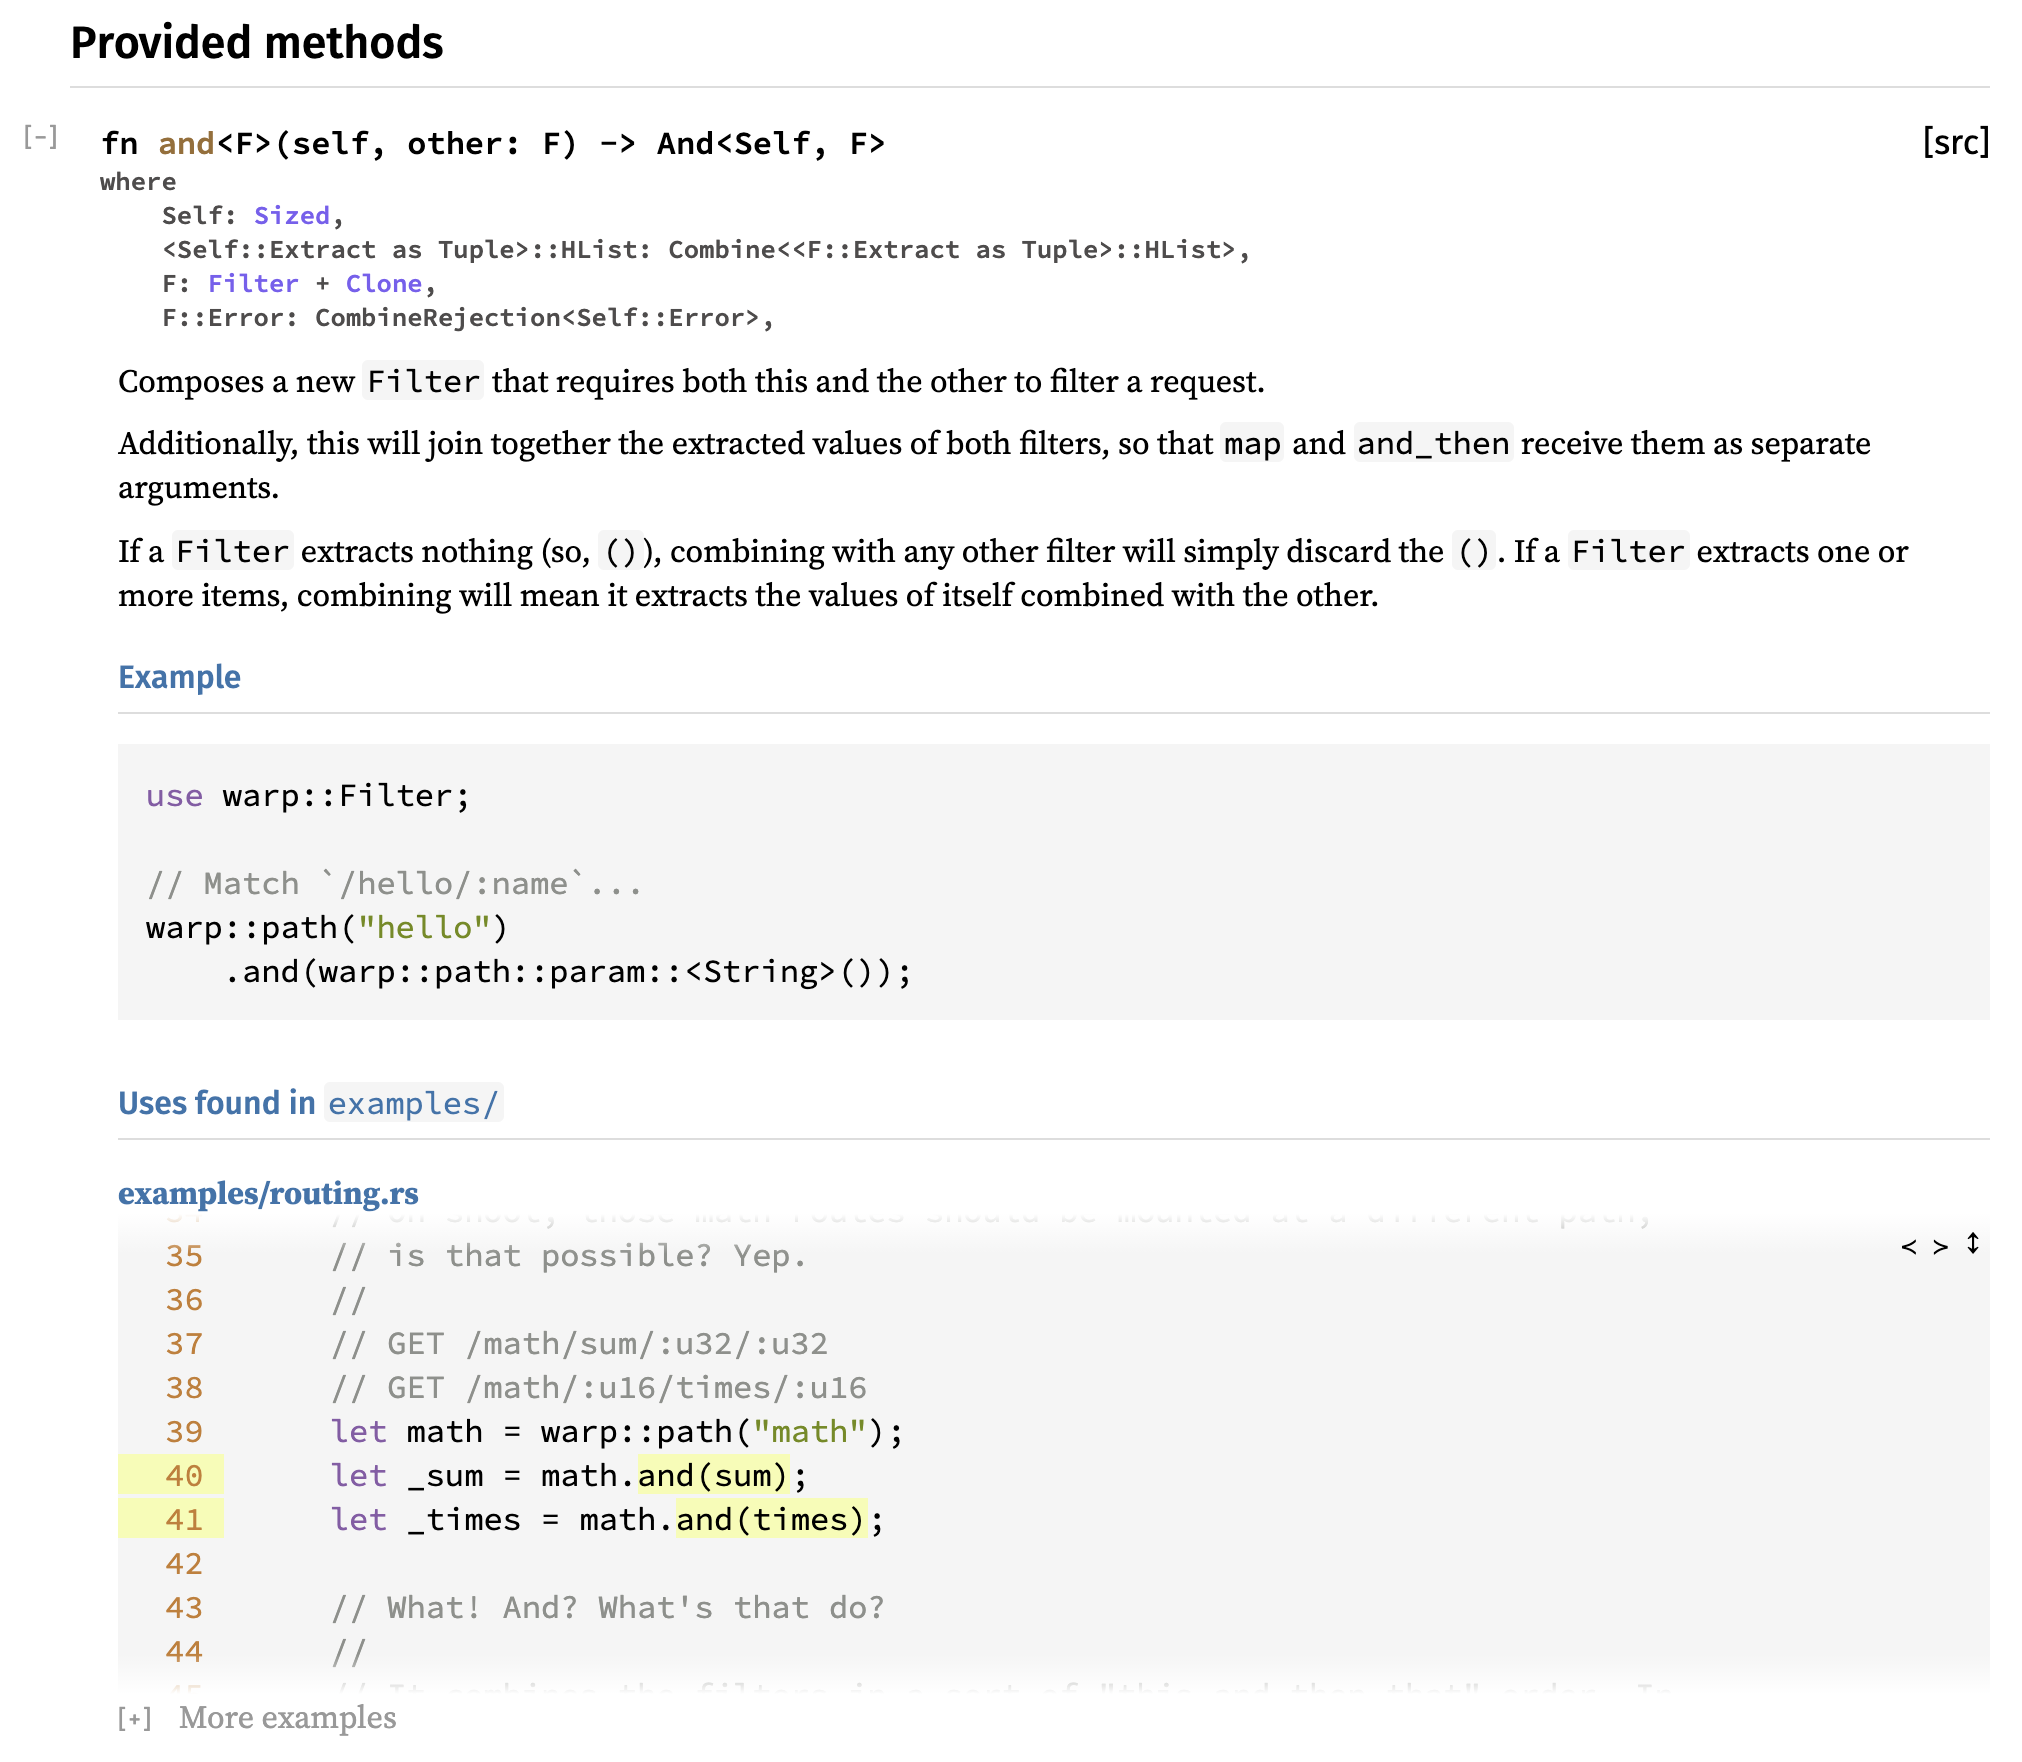 UI for scraped examples shown with Filter::and